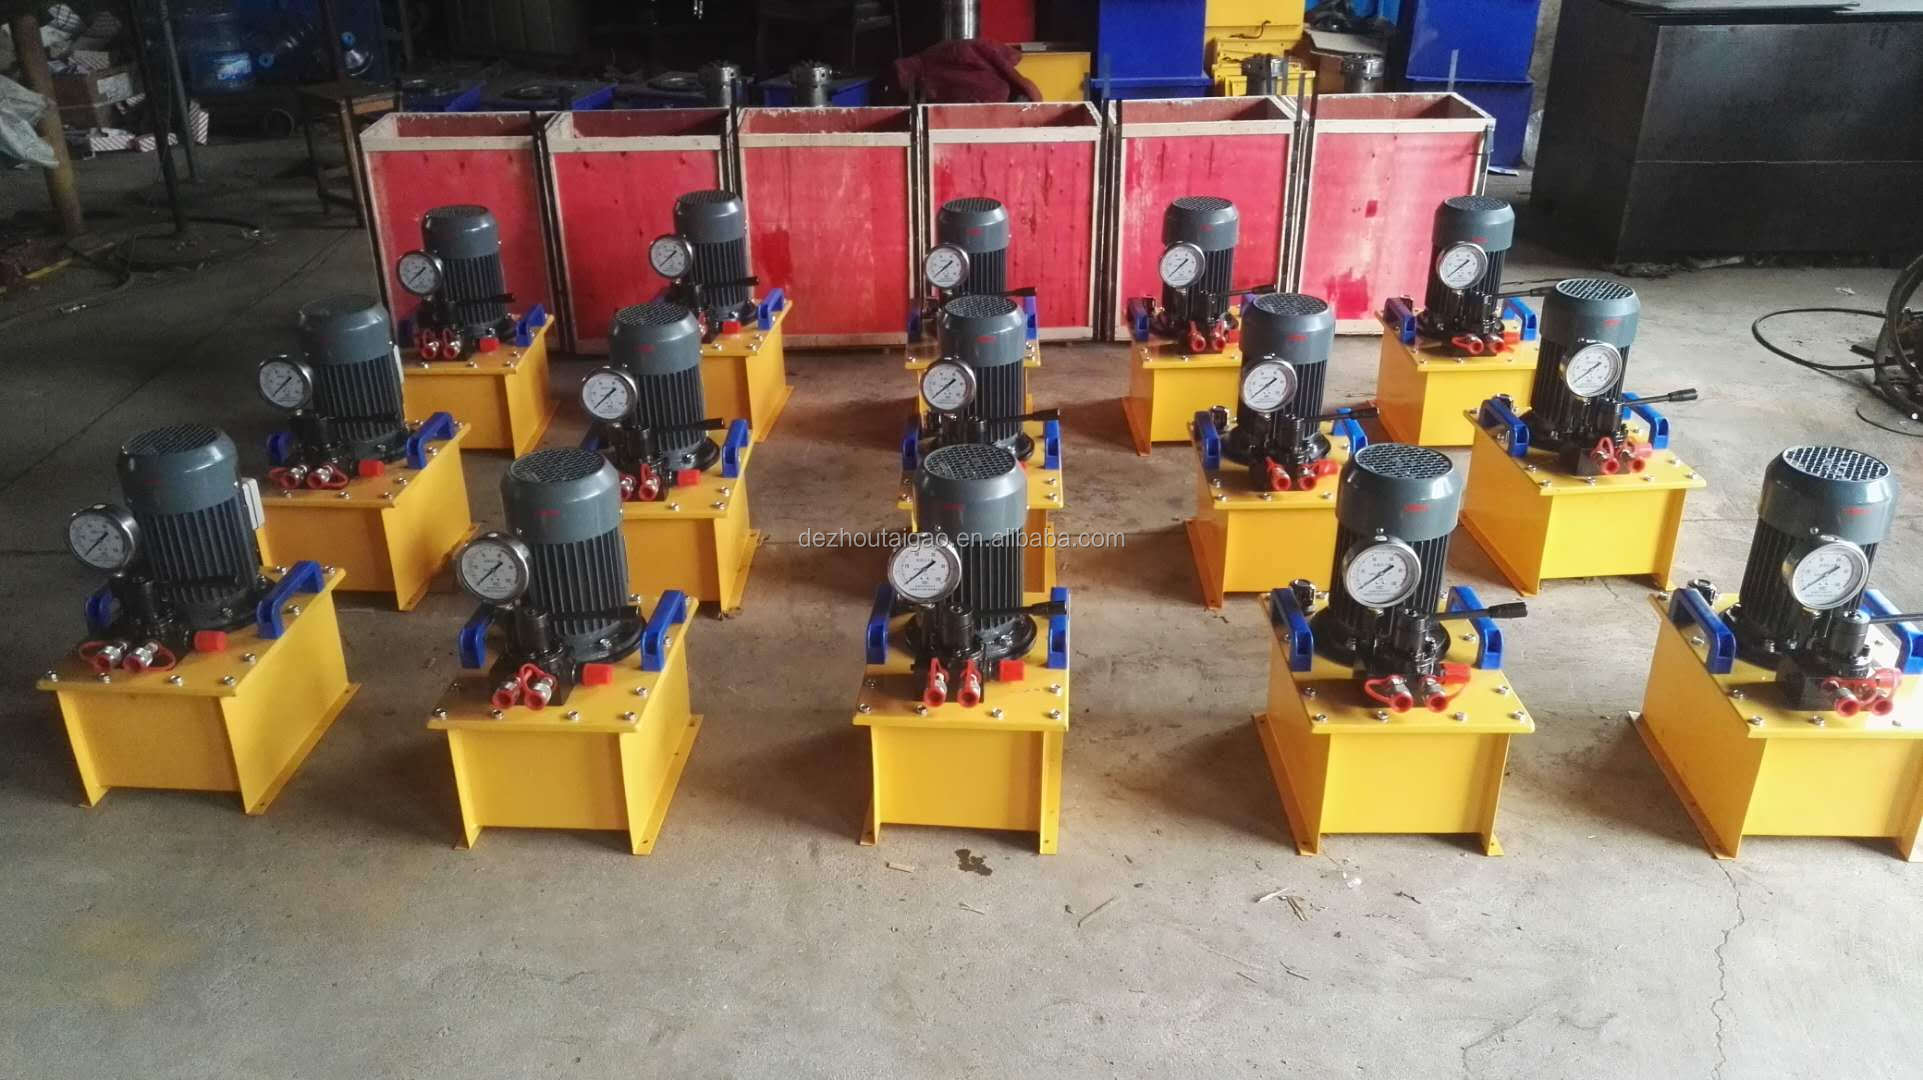 Low price, high quality hydraulic pump manufacturer in China